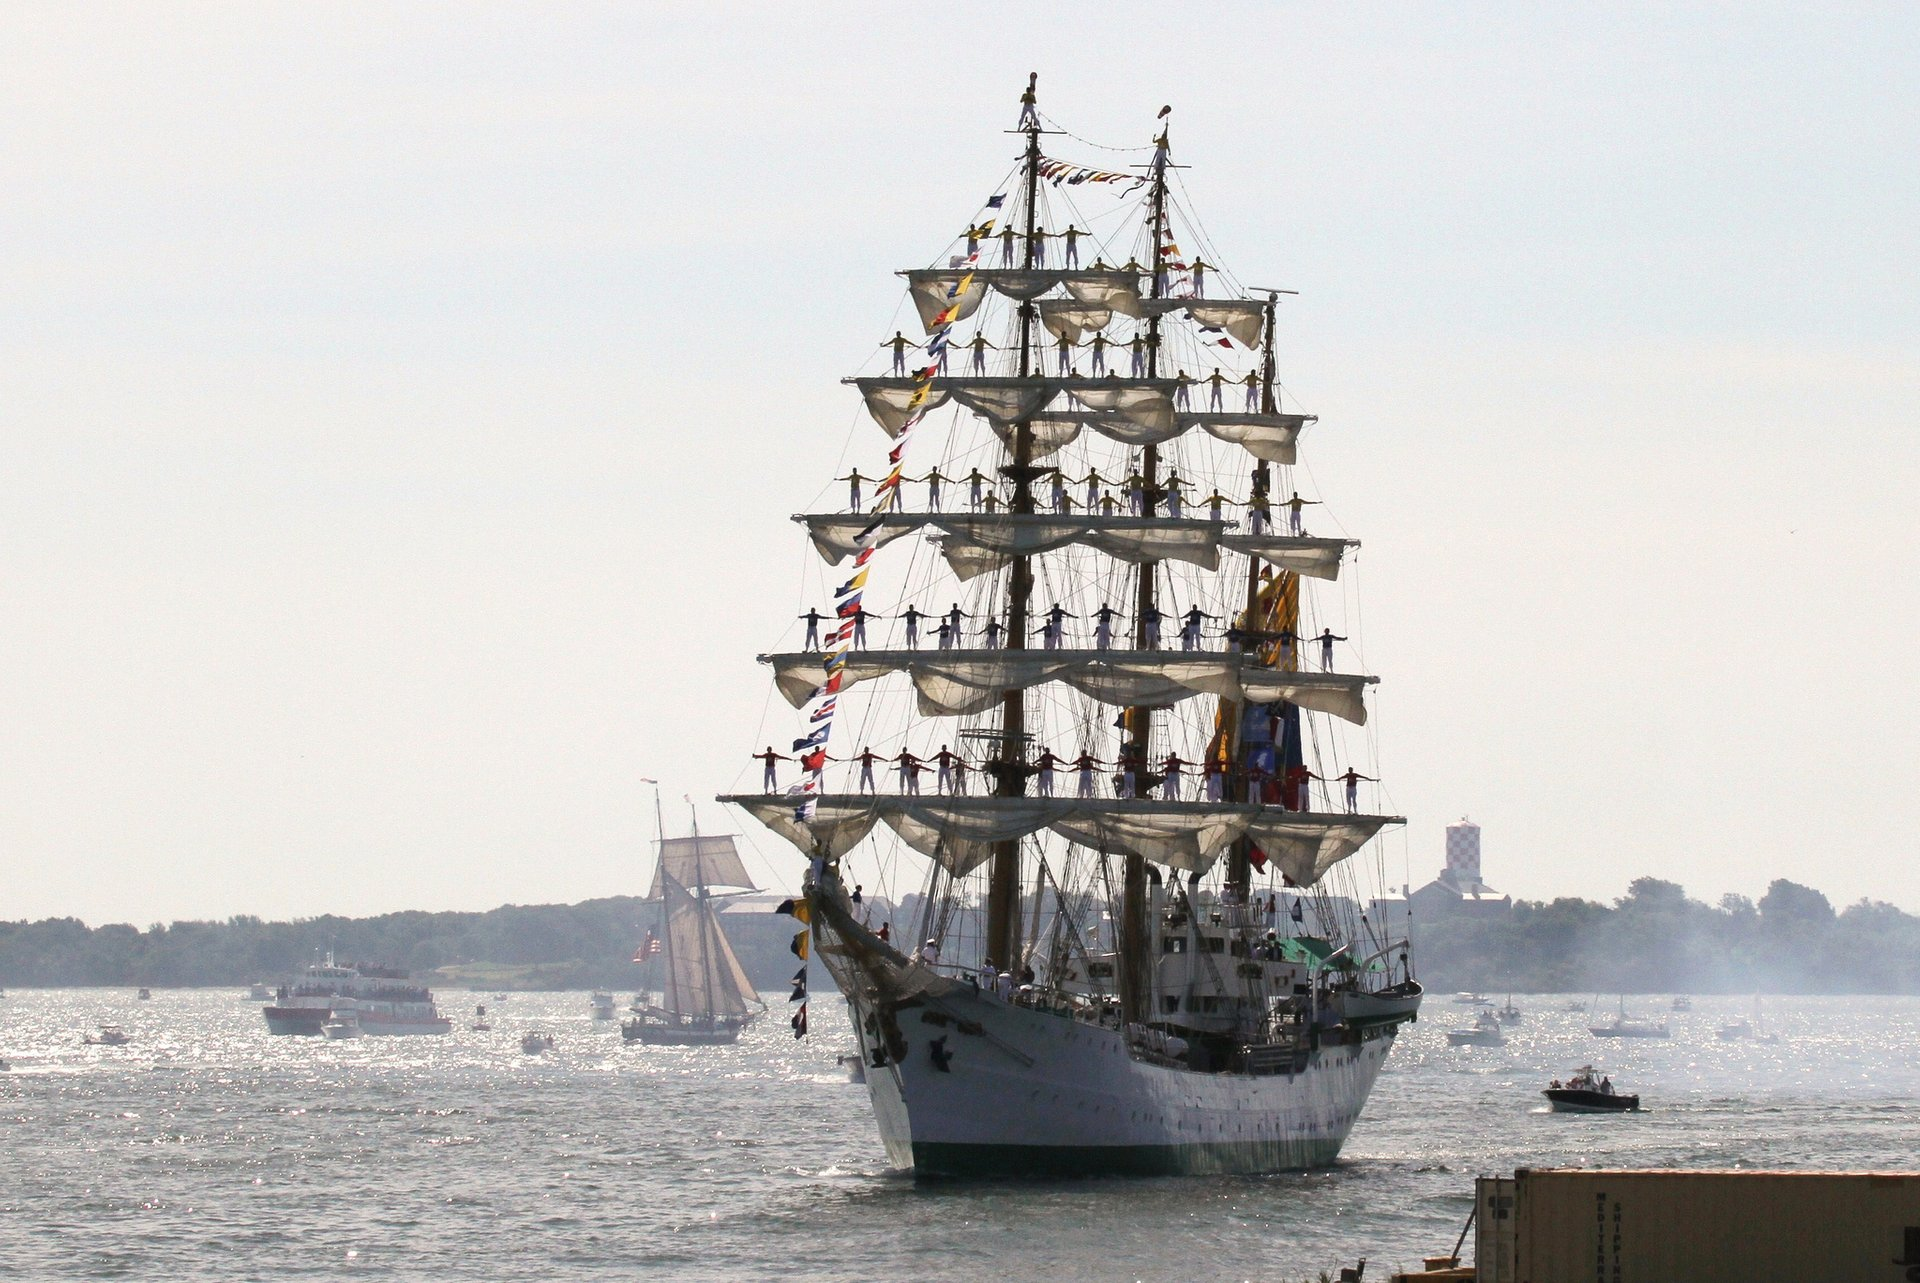 Best time to see Boston Harborfest in Boston 2019